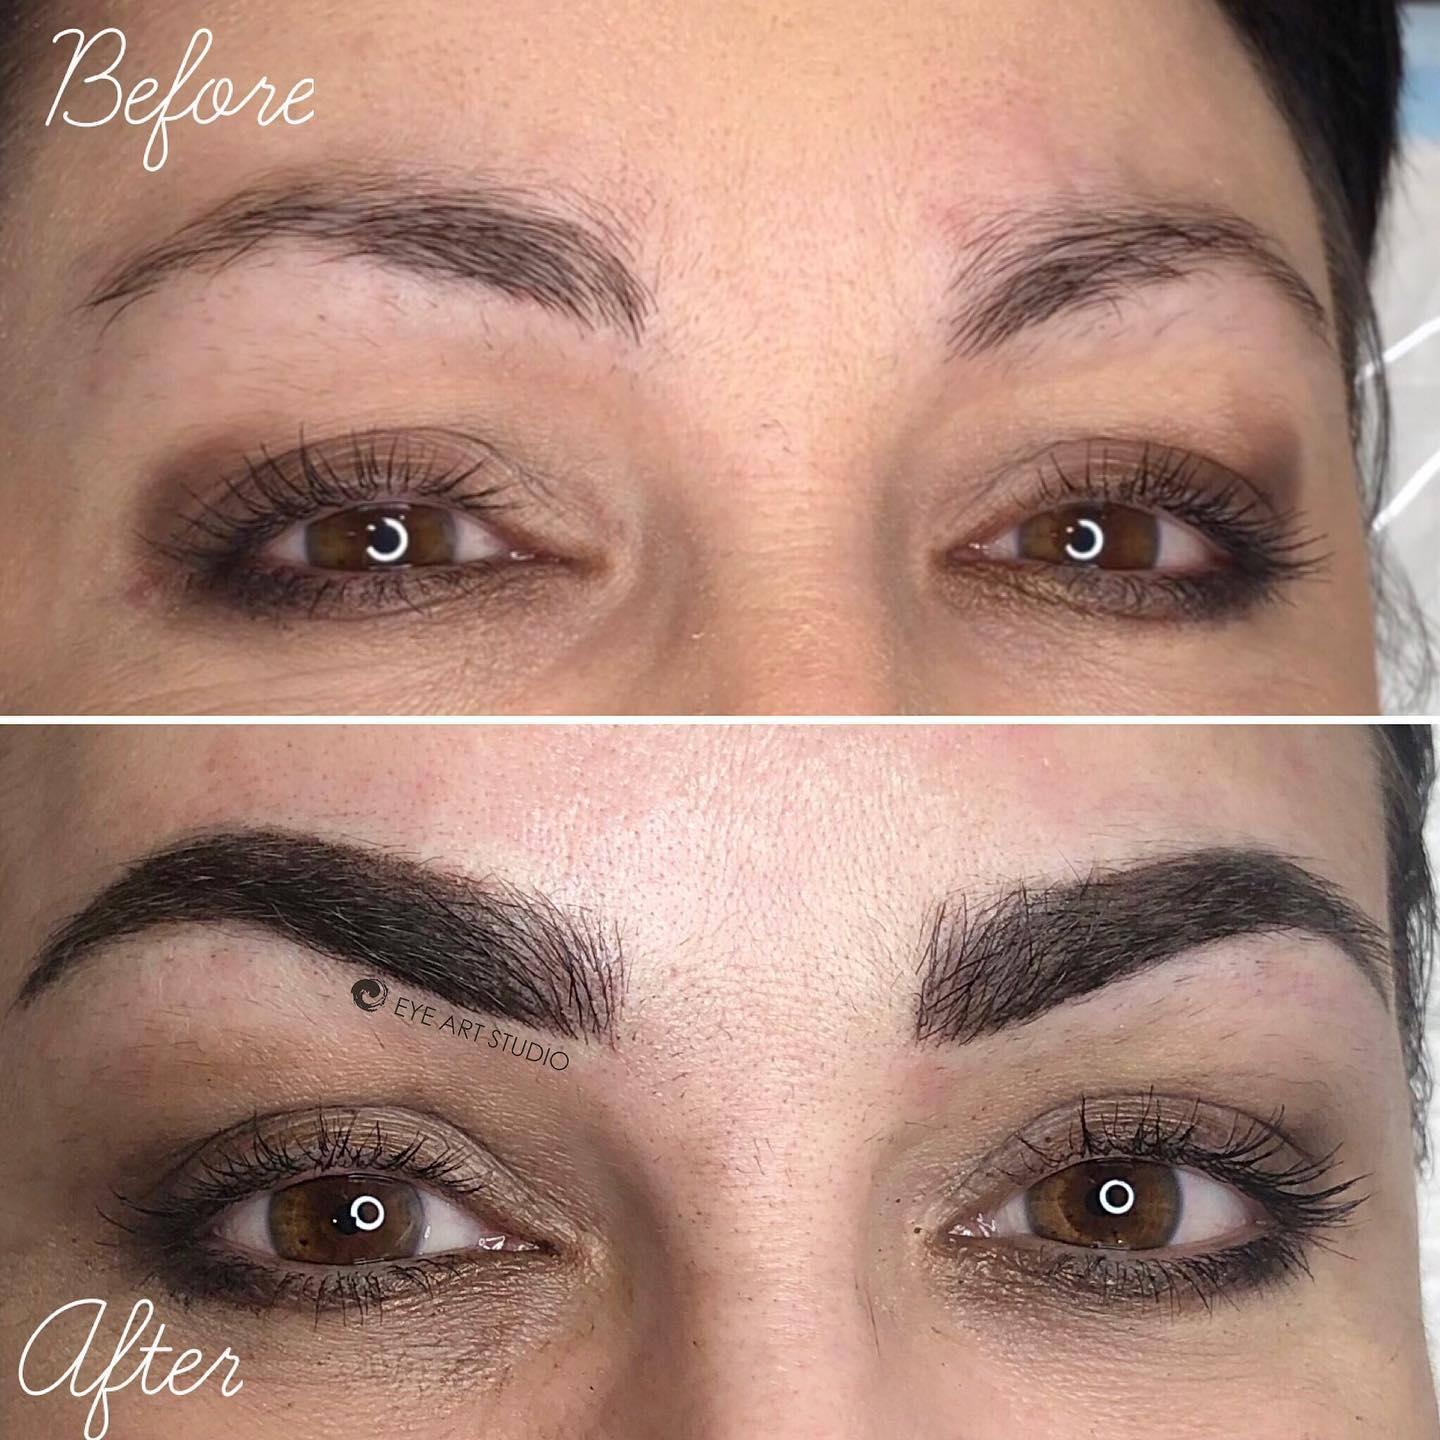 Eyebrow Tattoo, Eyebrow Tattooing Melbourne